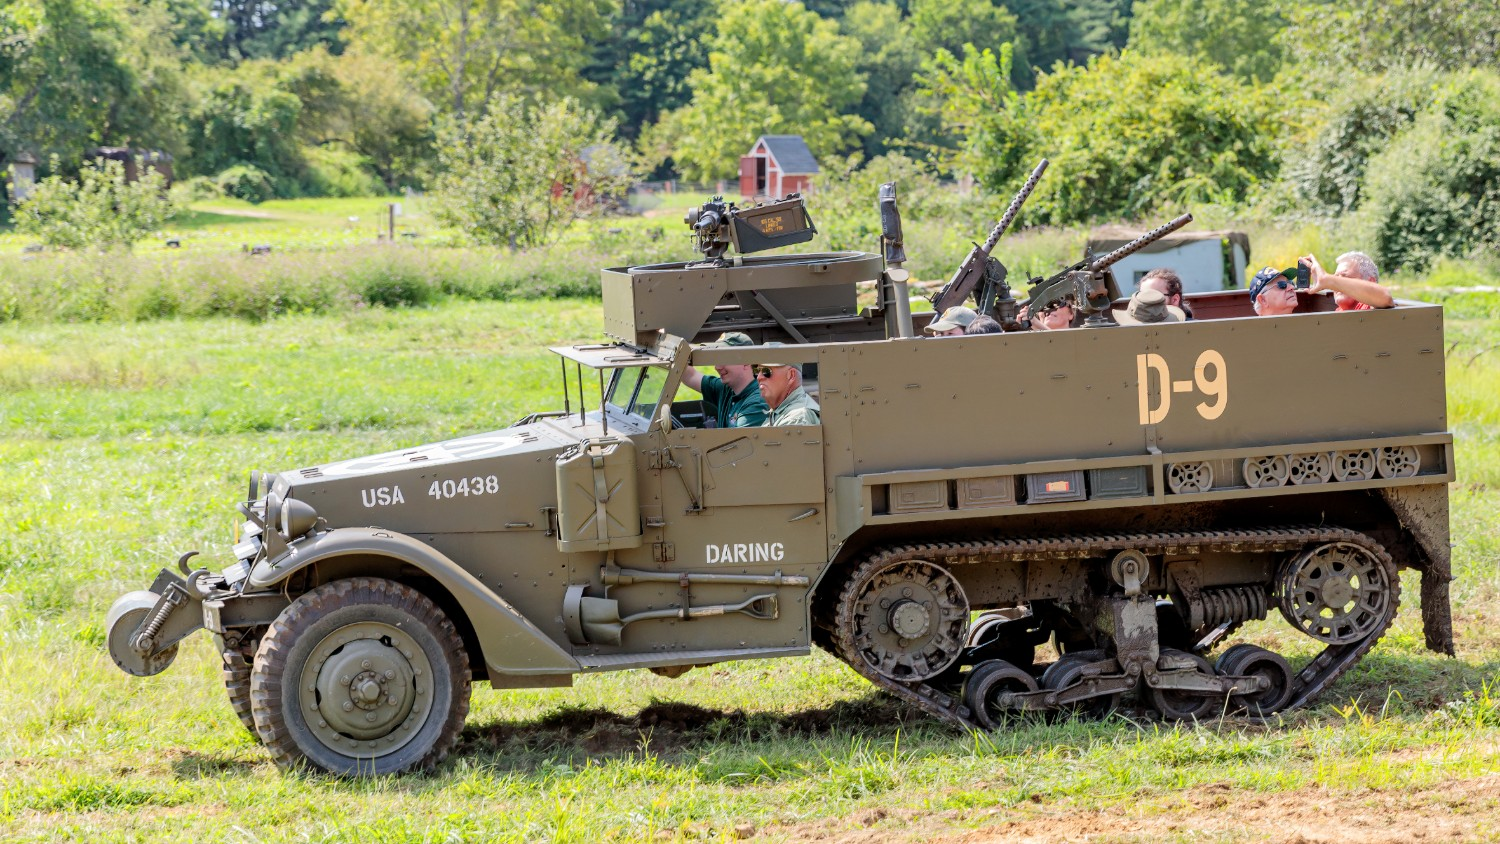 Driver in D-9 Artillery Tractor